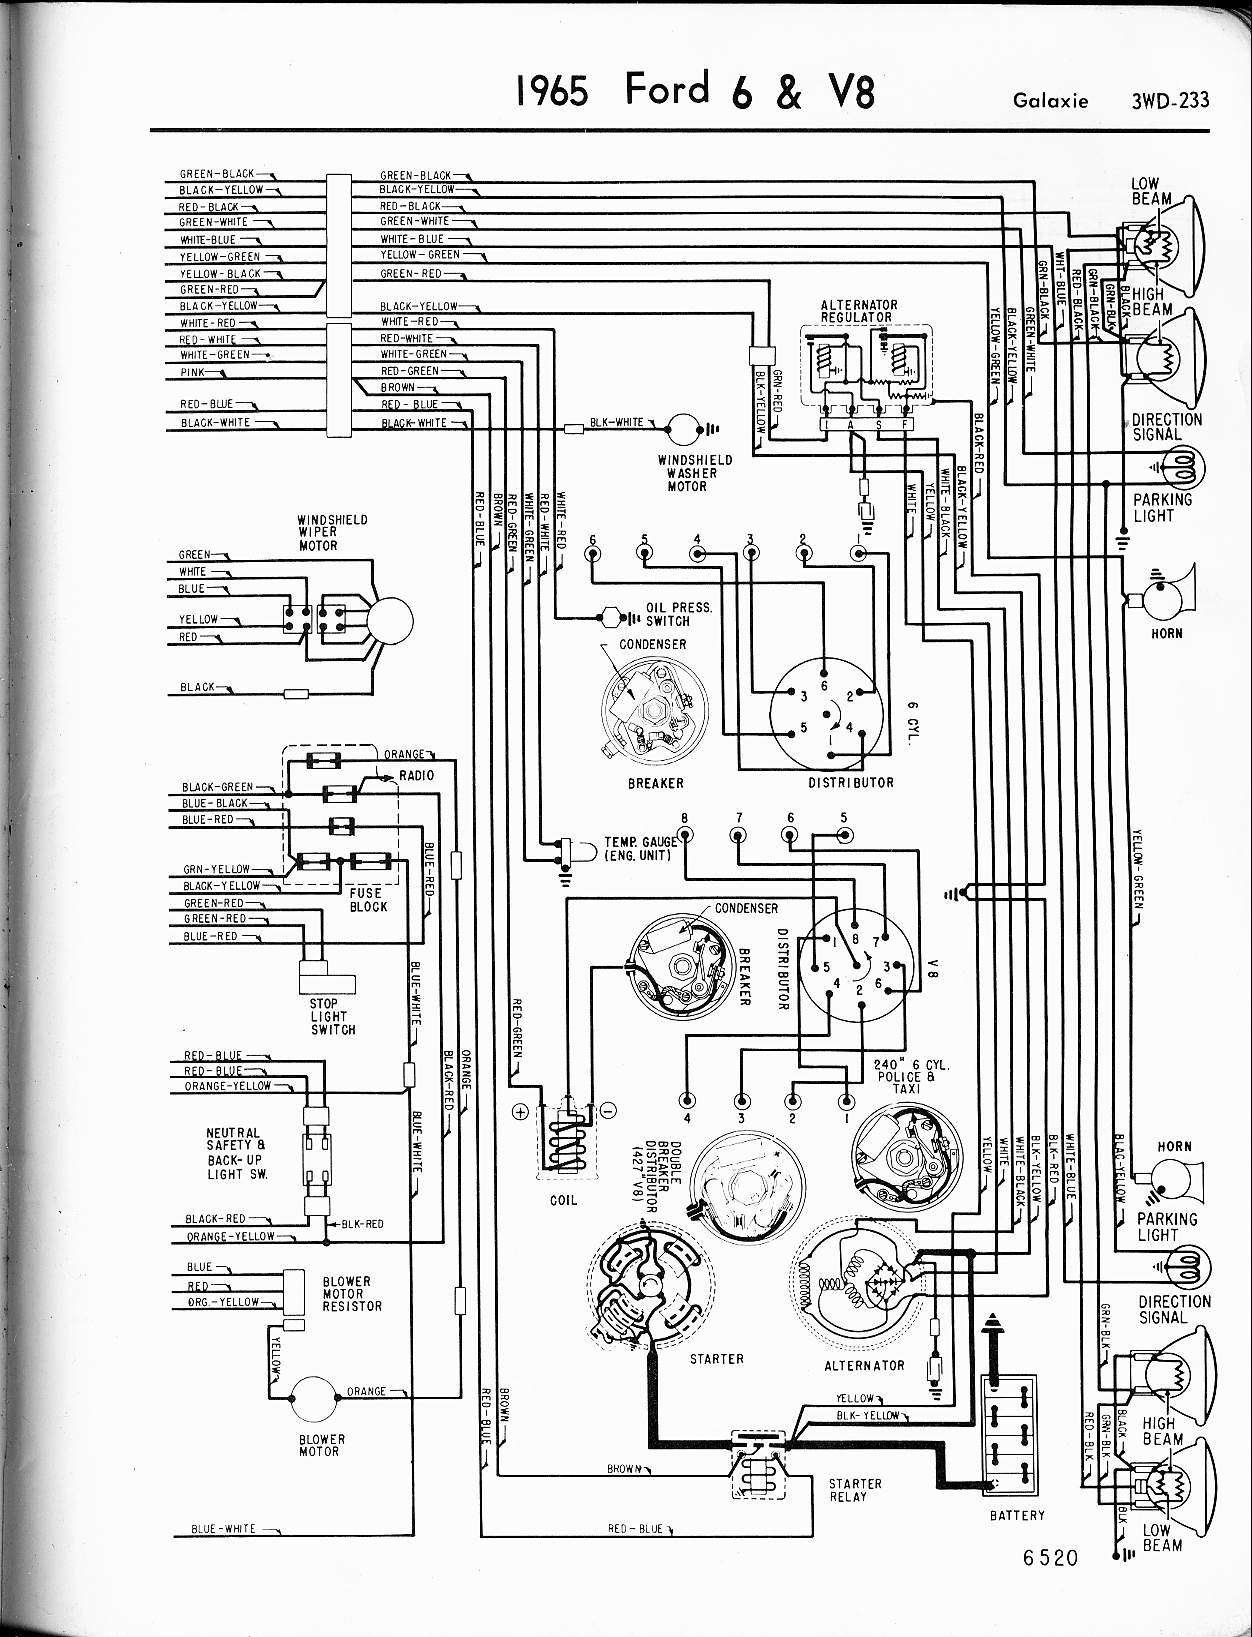 Enjoyable 64 Cj5 Wiring Diagram Wiring Diagram Database Wiring Cloud Geisbieswglorg